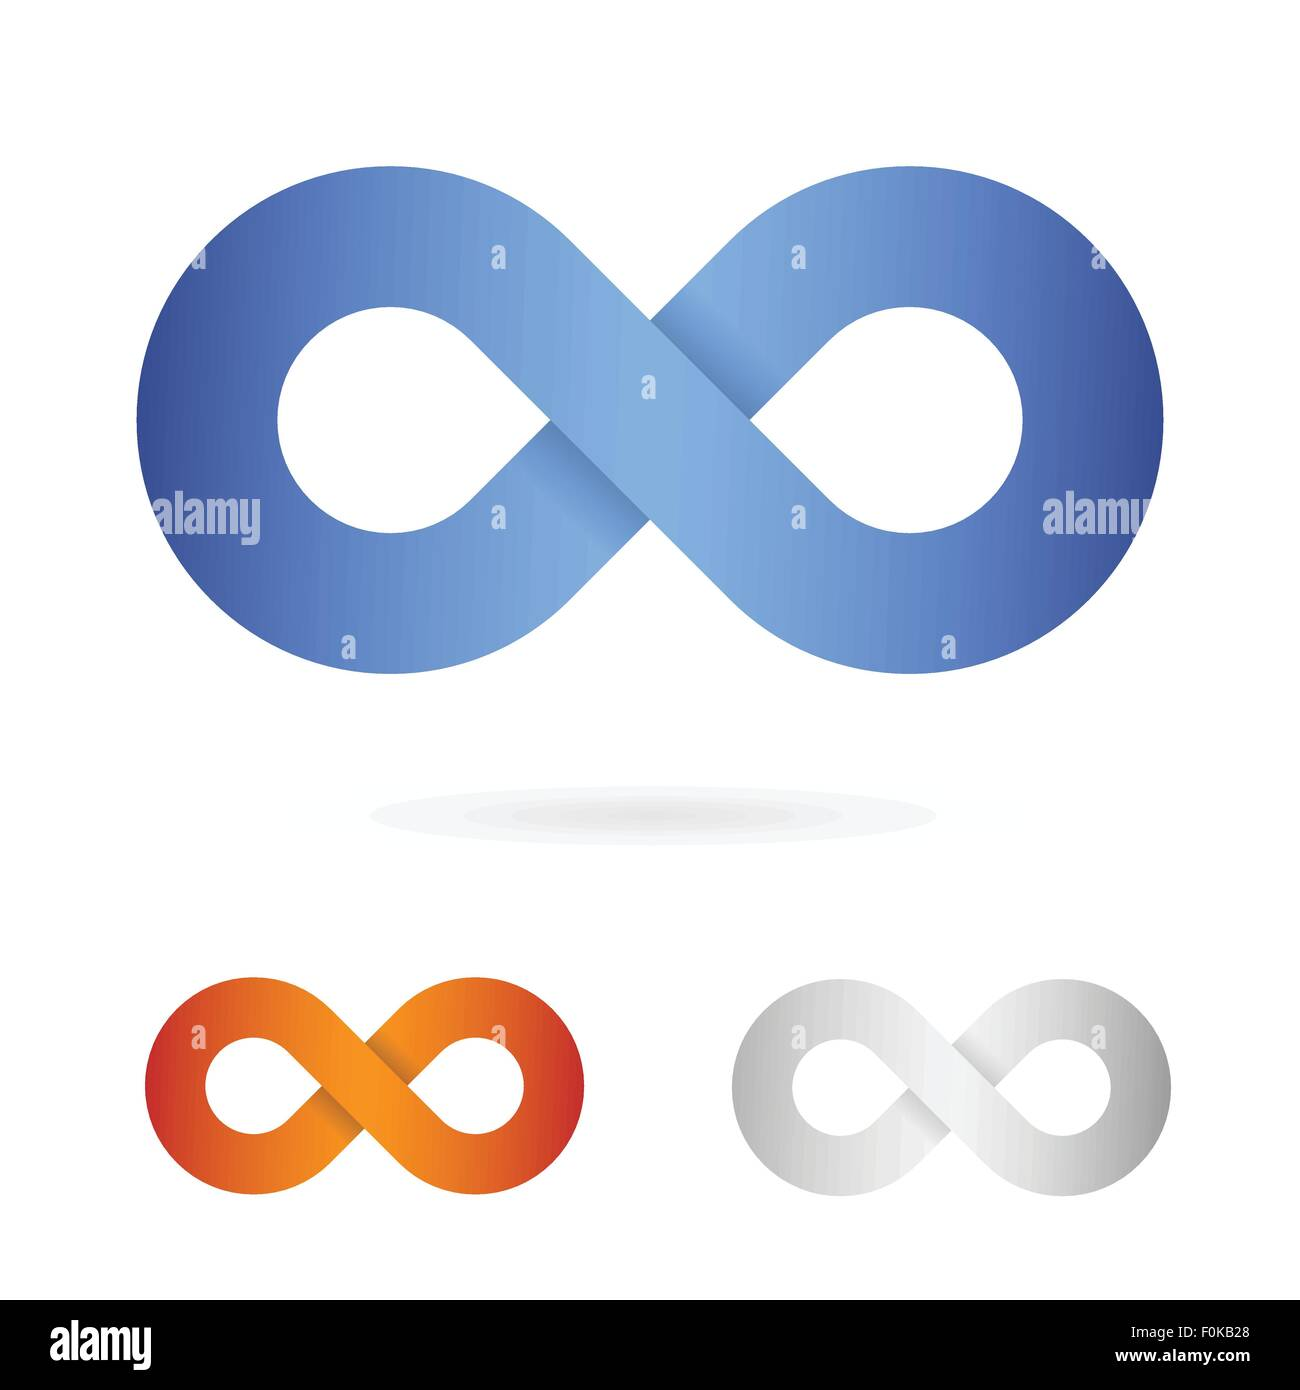 infinity sign icon vector illustration - Stock Image